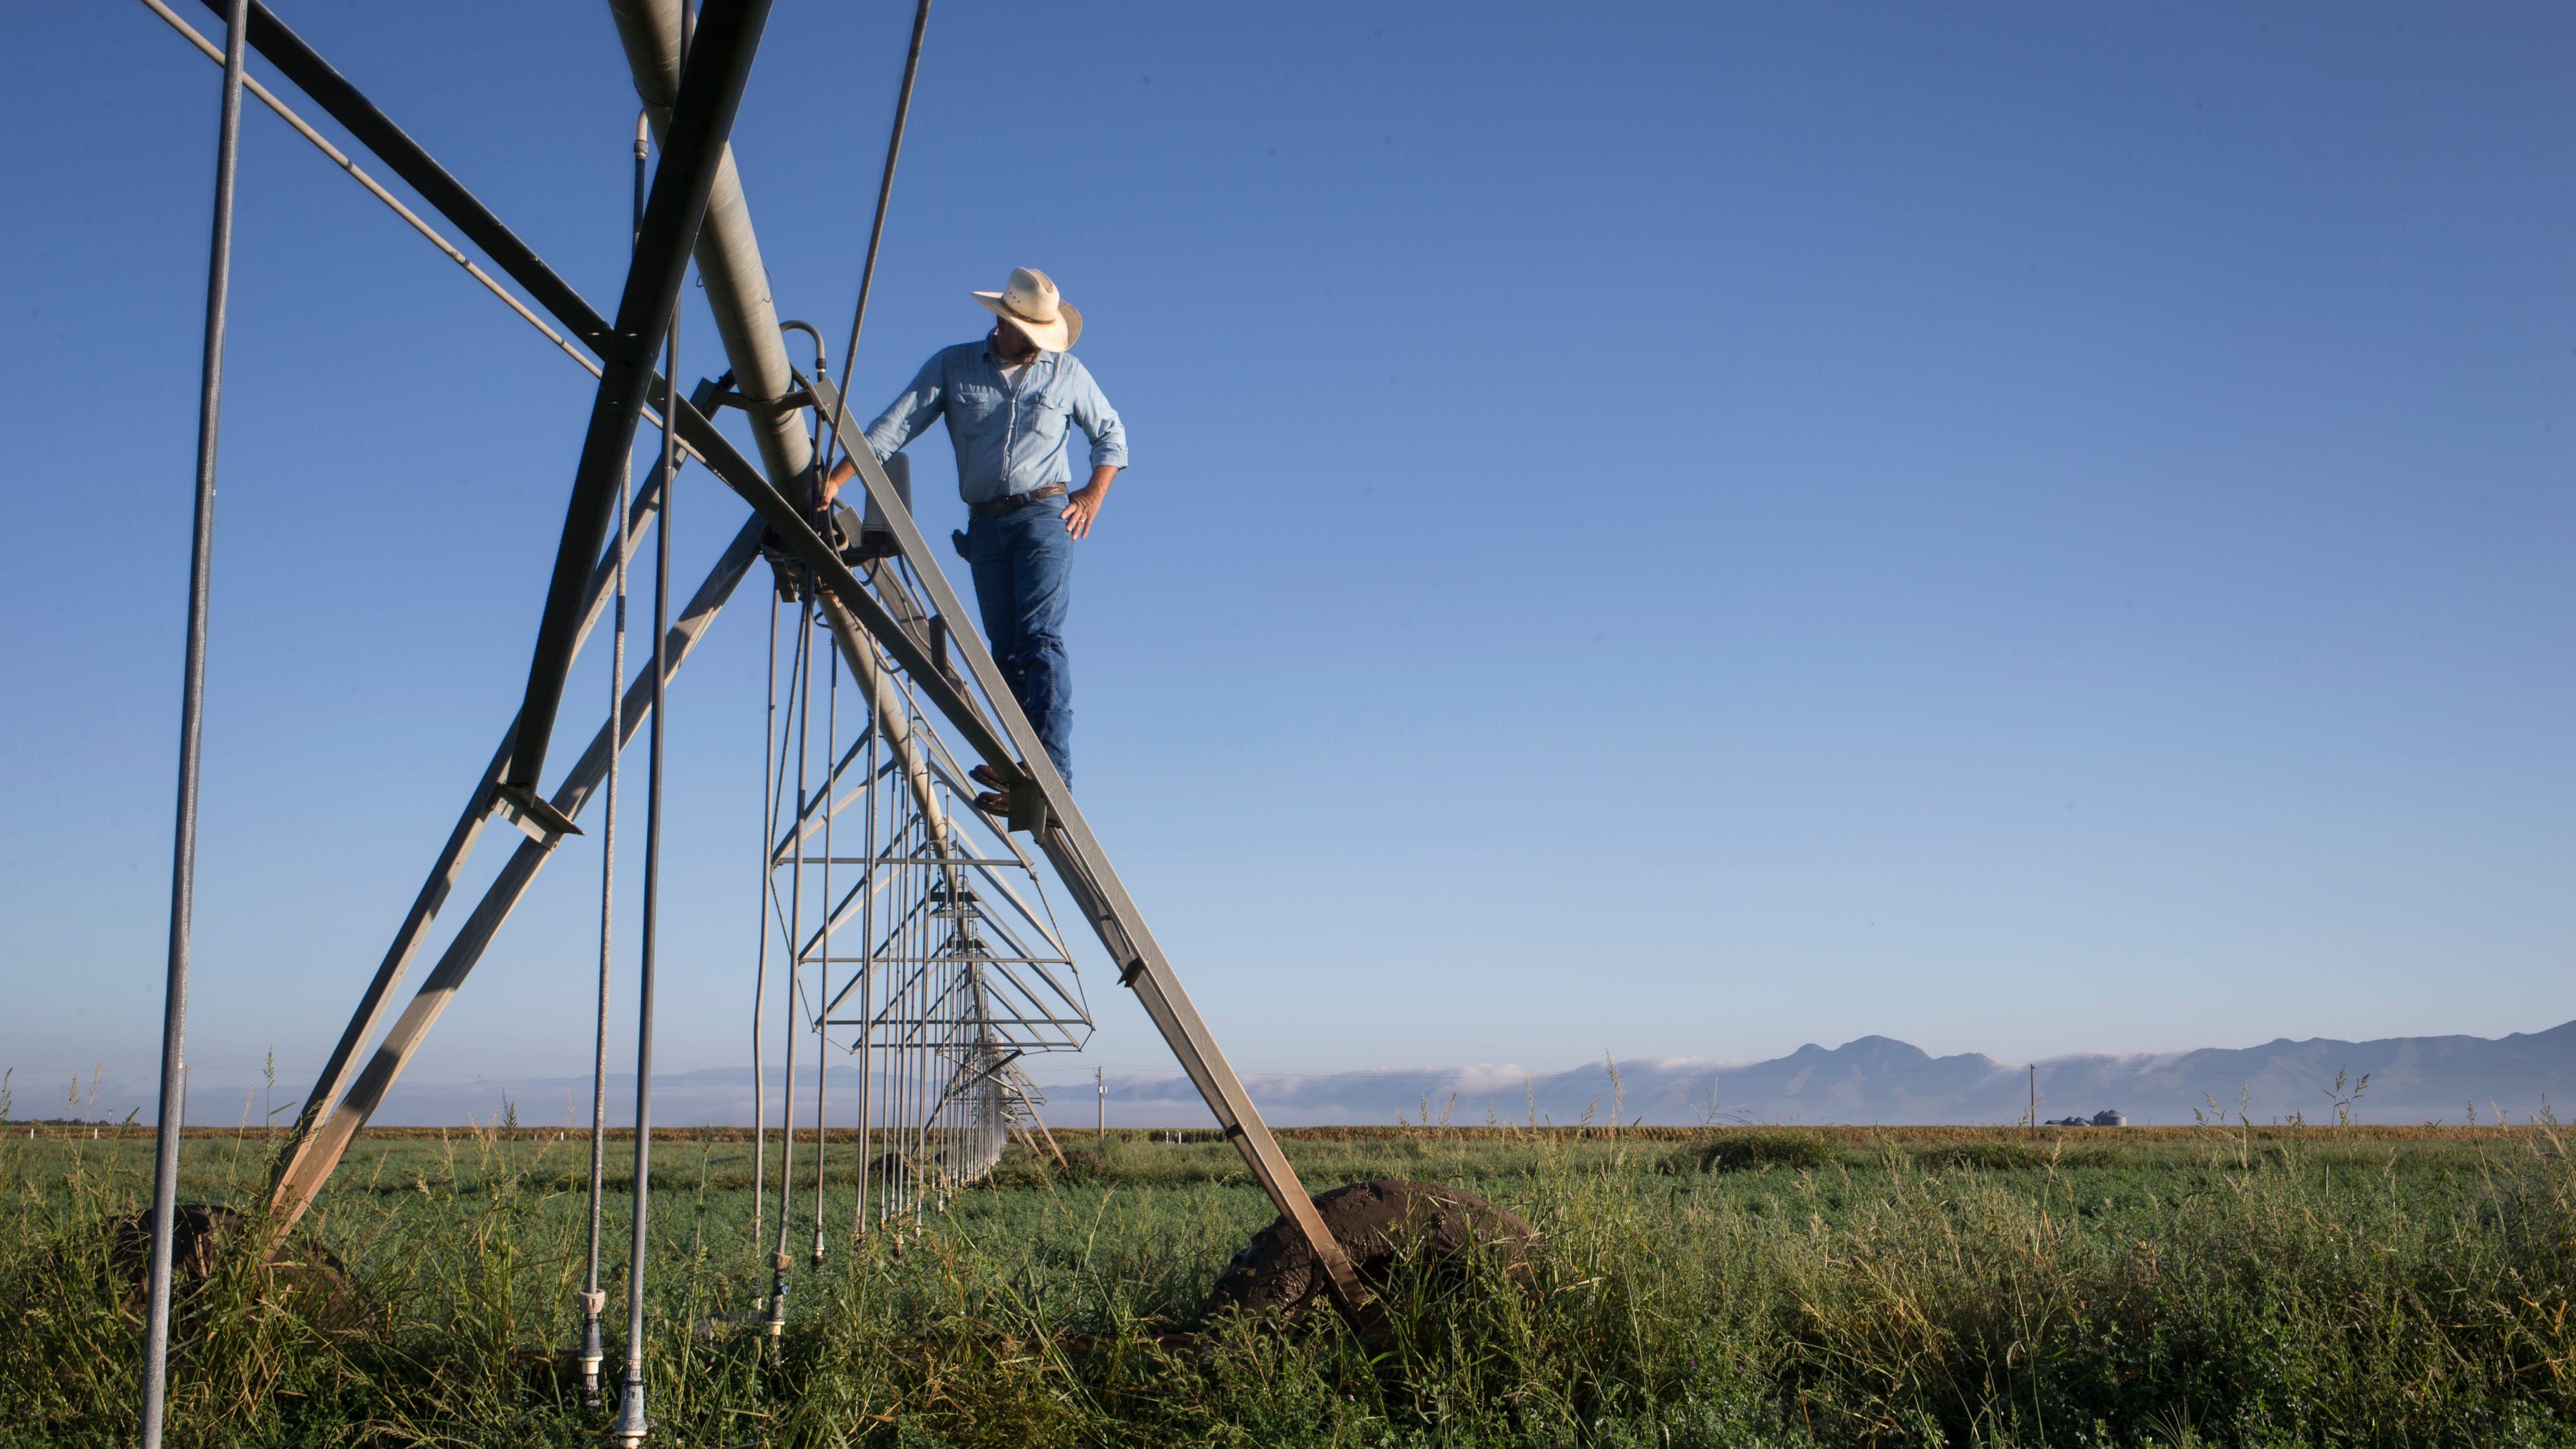 In southeastern Arizona, farms drill a half-mile deep while families pay the price